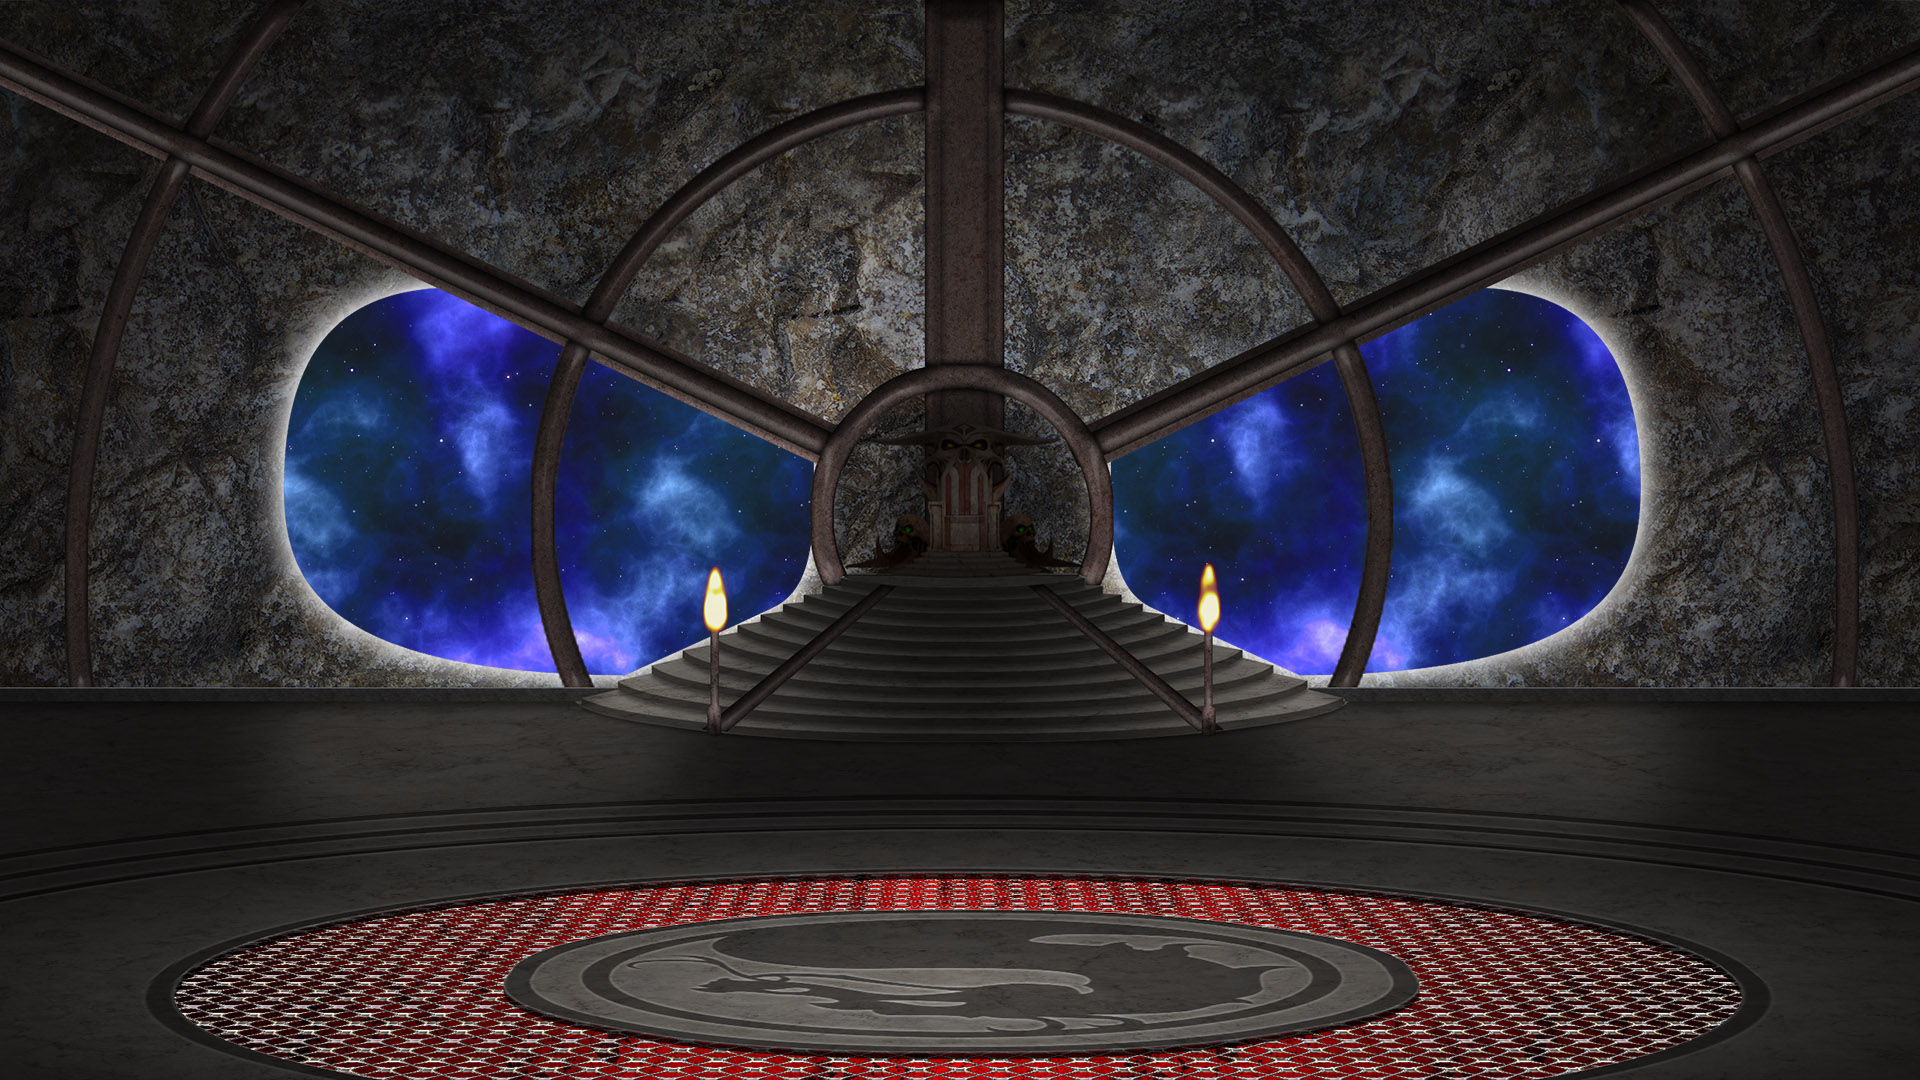 Shao Kahn's Throne Room - Empty Version by molim on DeviantArt